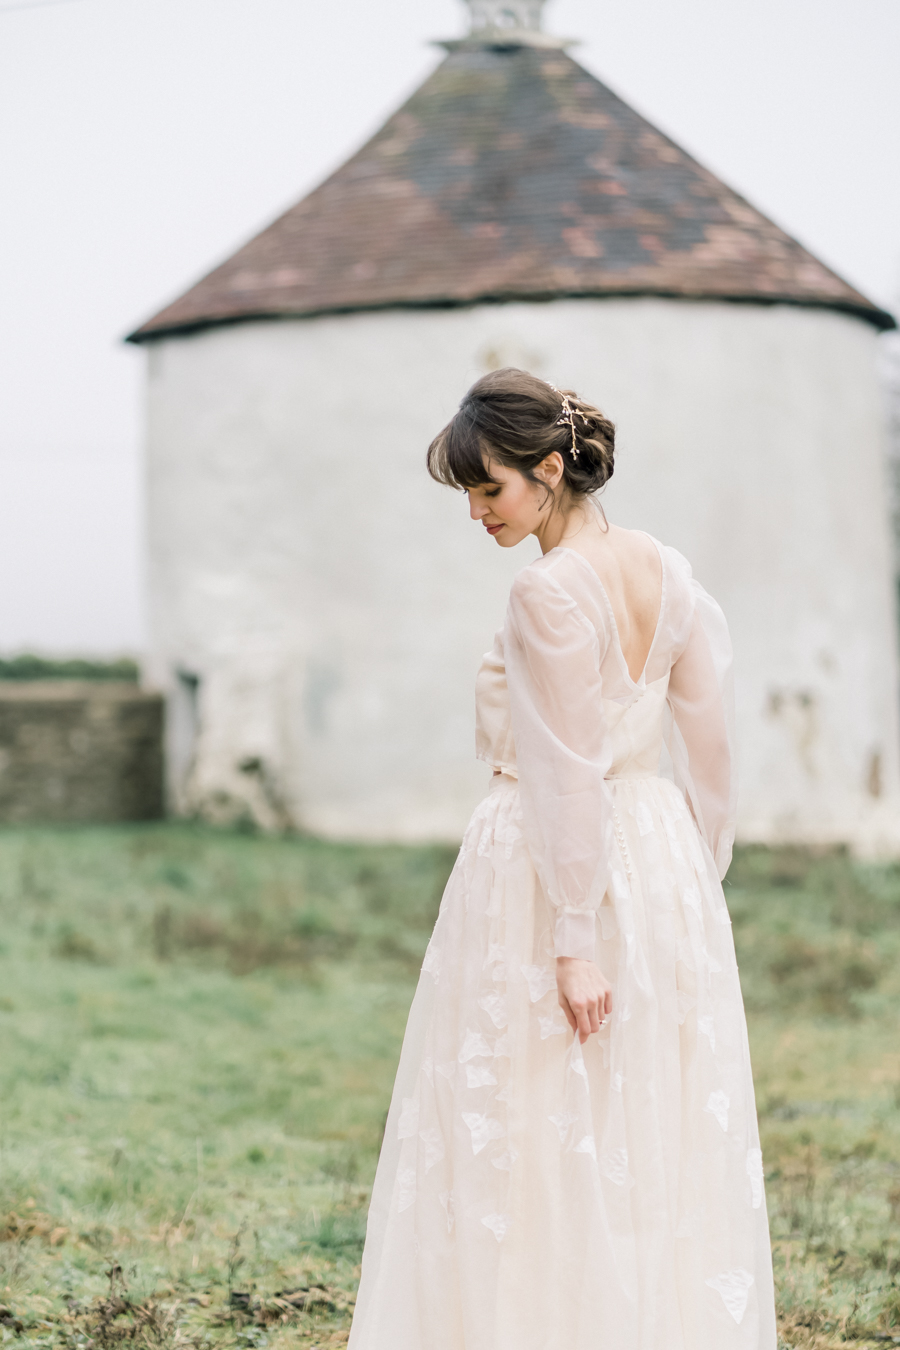 Spring blossom wedding style inspiration and ideas with Chloe Ely Photography at Barton Court (12)